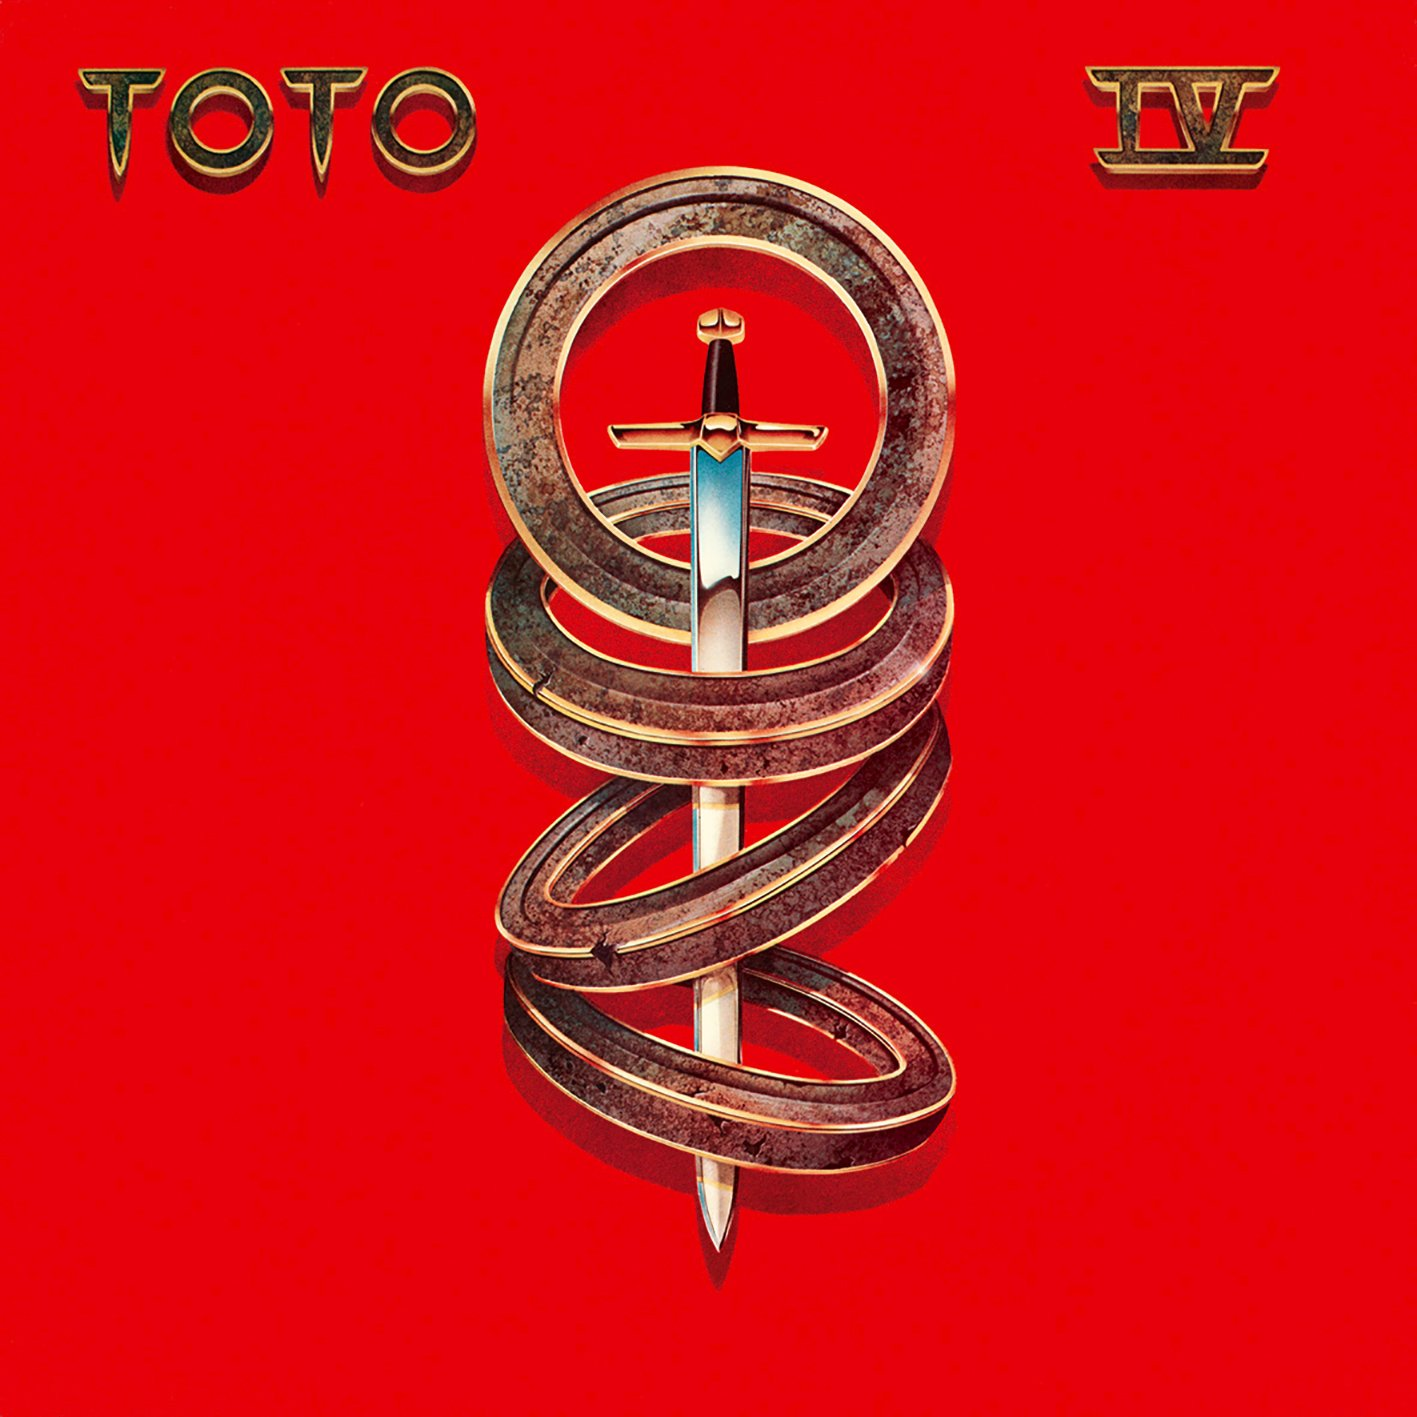 Toto - Toto IV - Cardboard Sleeve - High-Definition CD Deluxe Vinyl ...